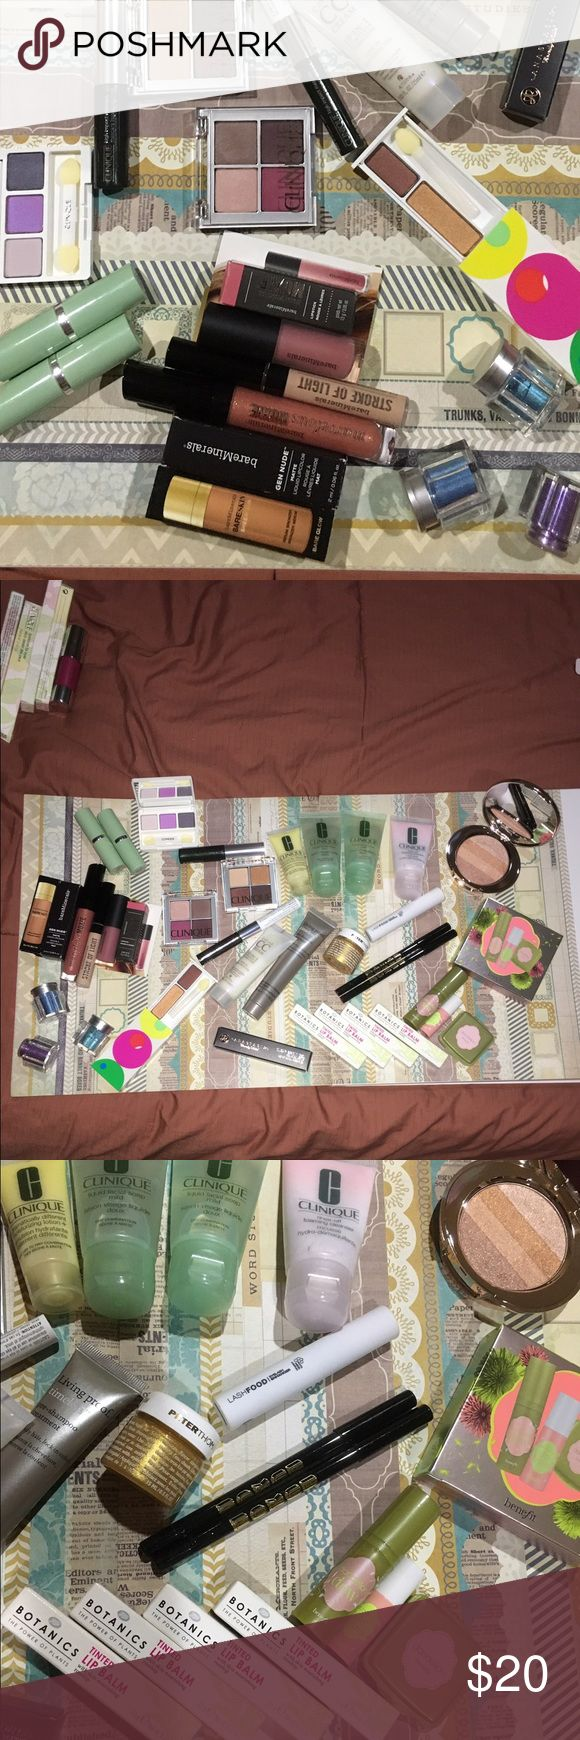 Bare minerals new pick 4 Unopened, never used .... Clinique, bare minerals, buxom, benefit, boots botanics, no 7, smashbox, and more...    pick 4 items for $15  .     I have other makeup auctions so check those too.     The peter Roth gold is 0.5 oz (15ml) bareMinerals Makeup